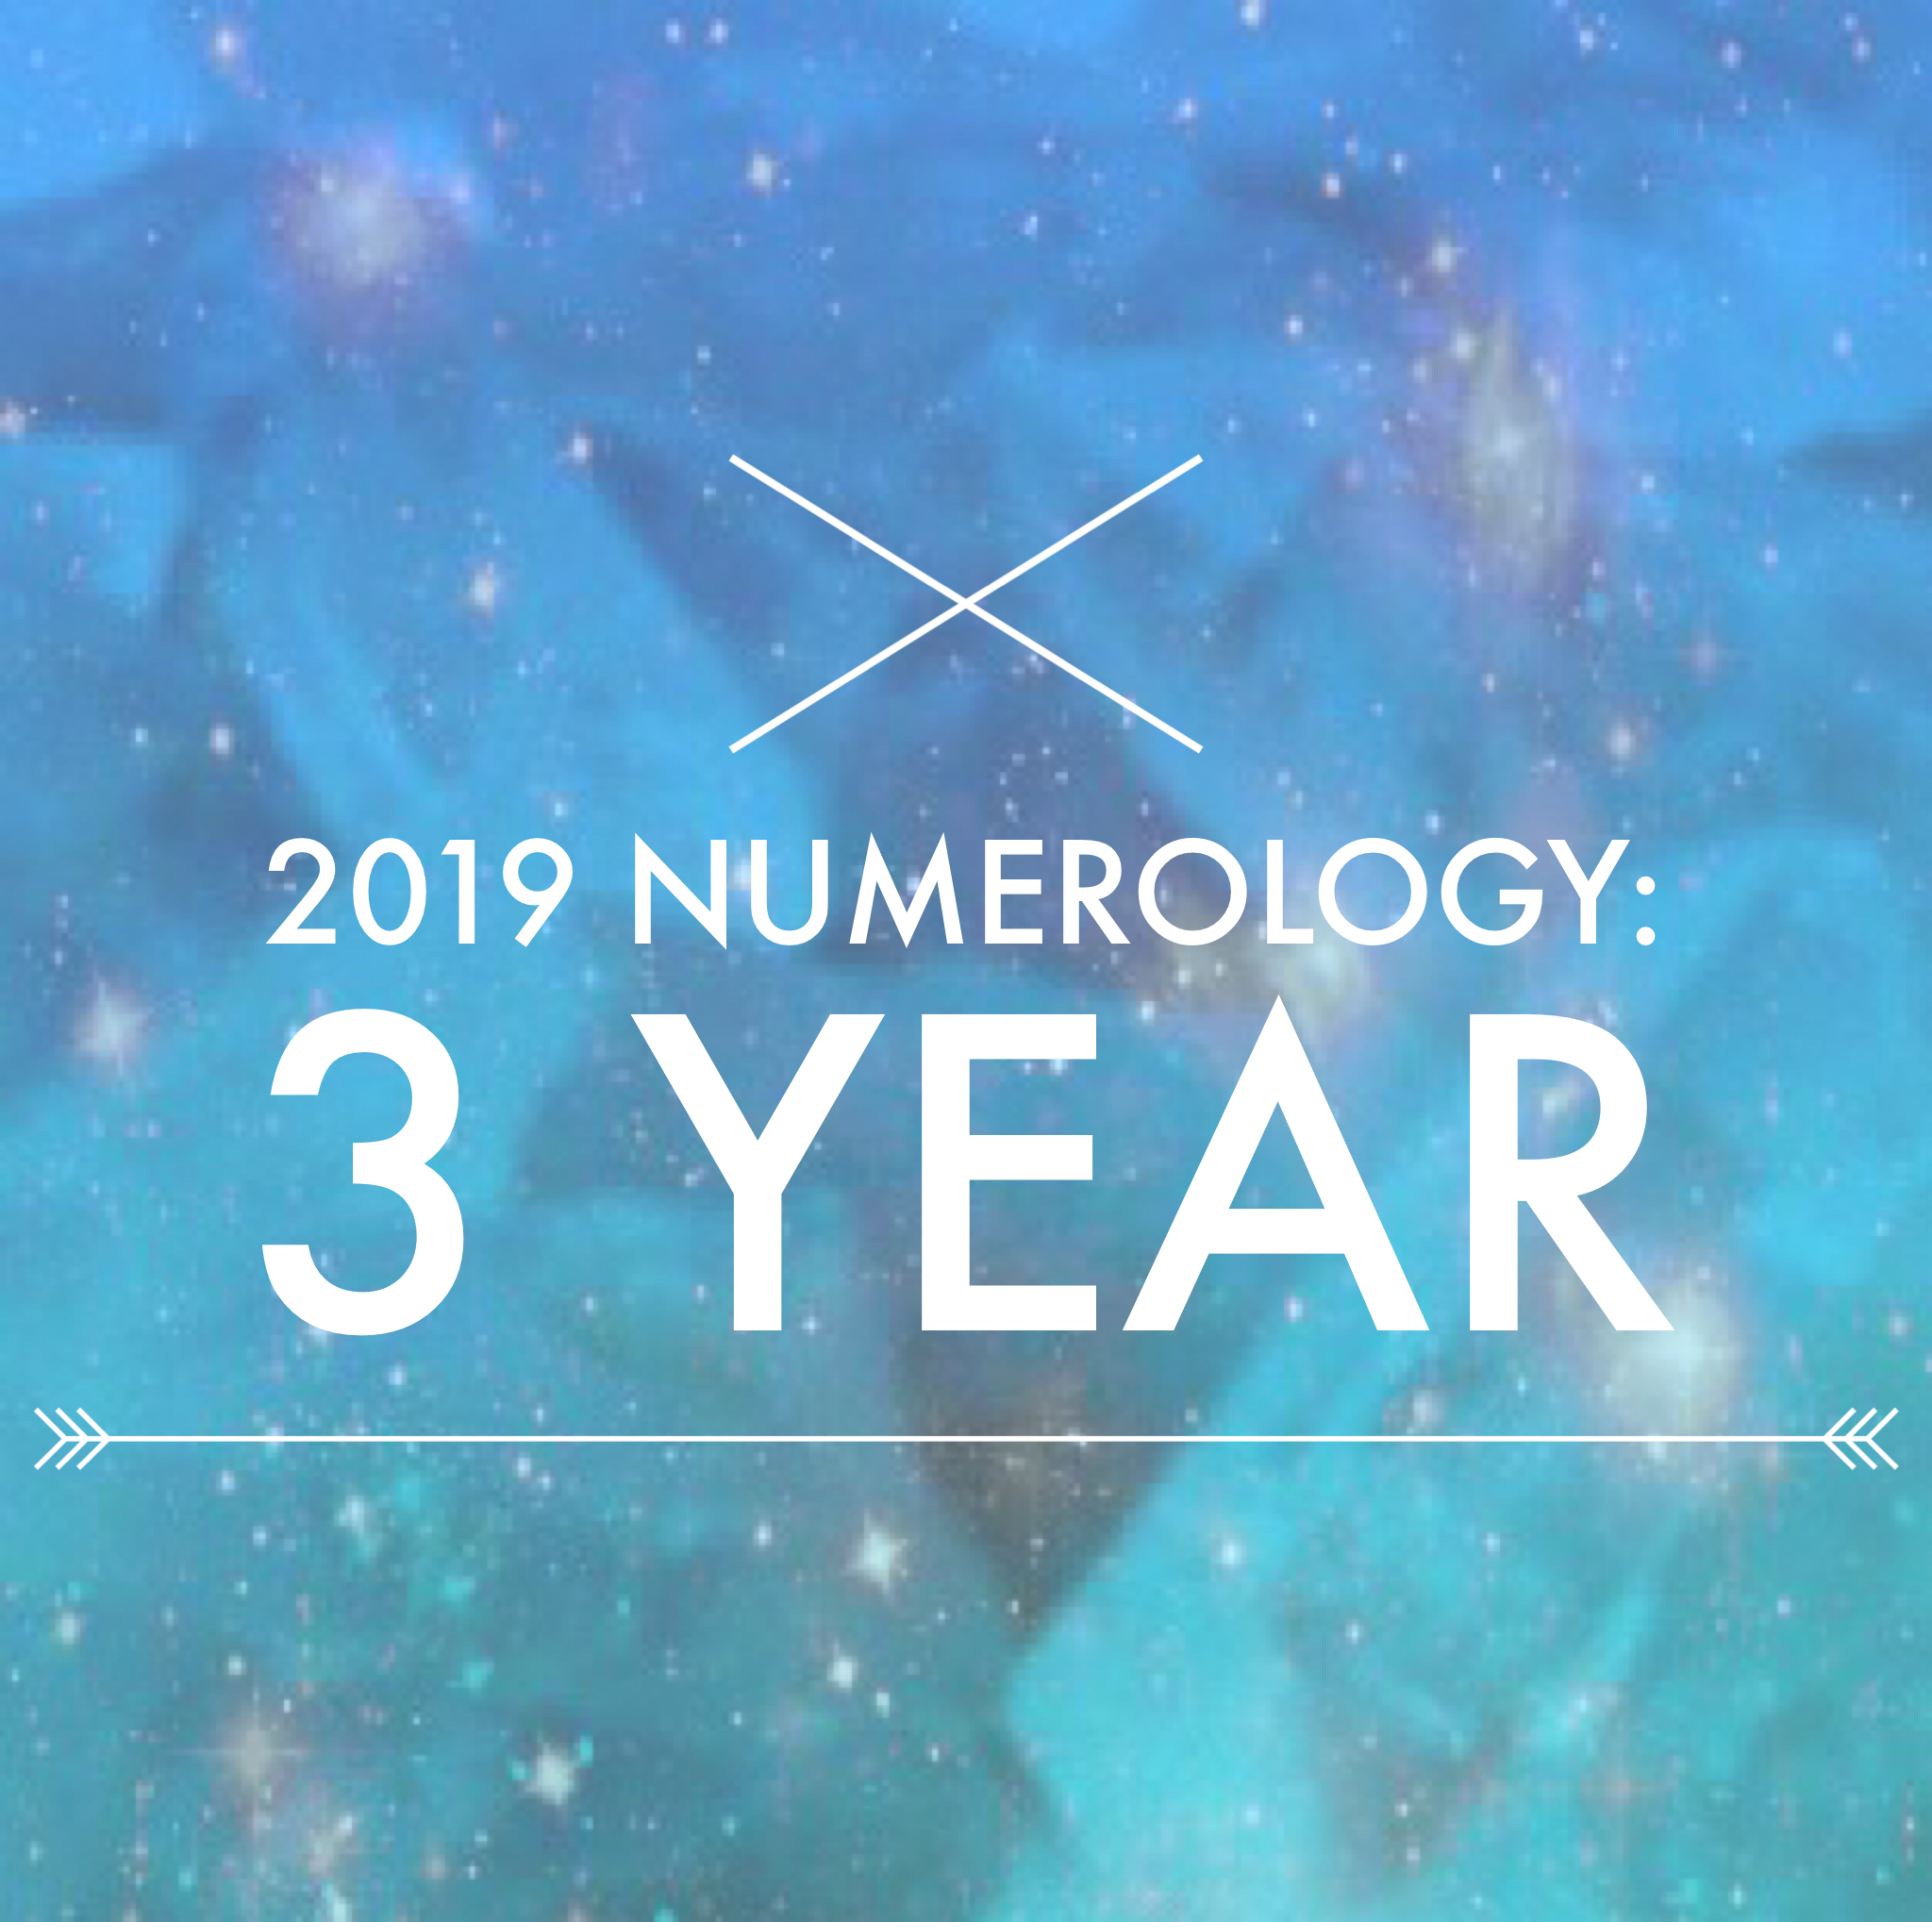 2019 numerology: 3 year [time to own your power]